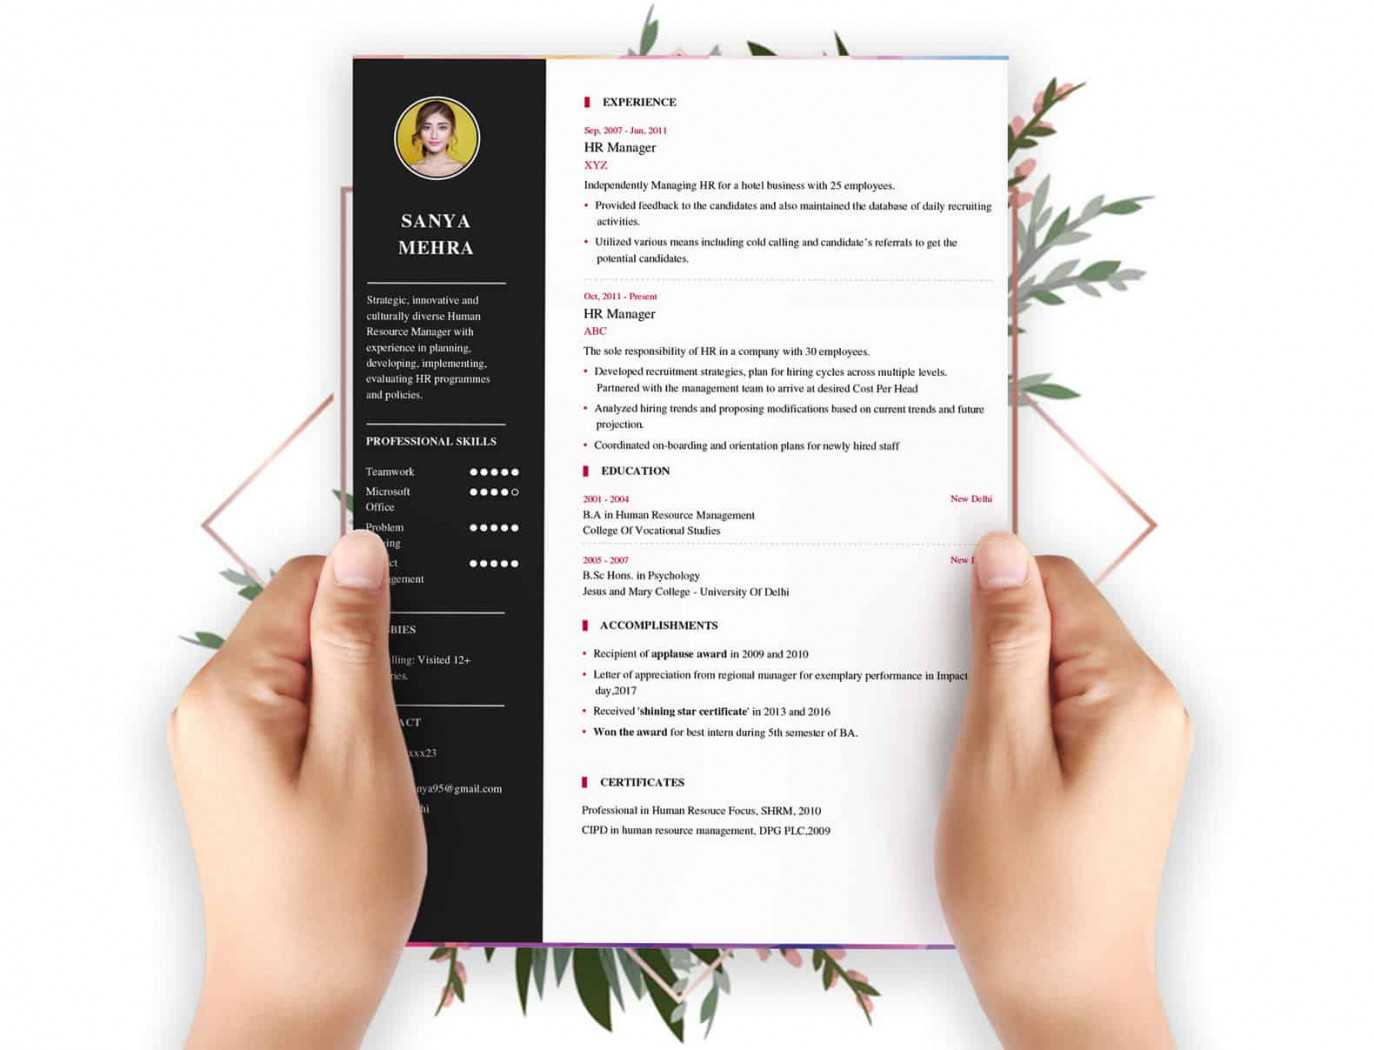 Create Resume Free Resume Builder Free Resume Builder Latest Resume Format 8 Create Your Own Resume Template create resume free|wikiresume.com